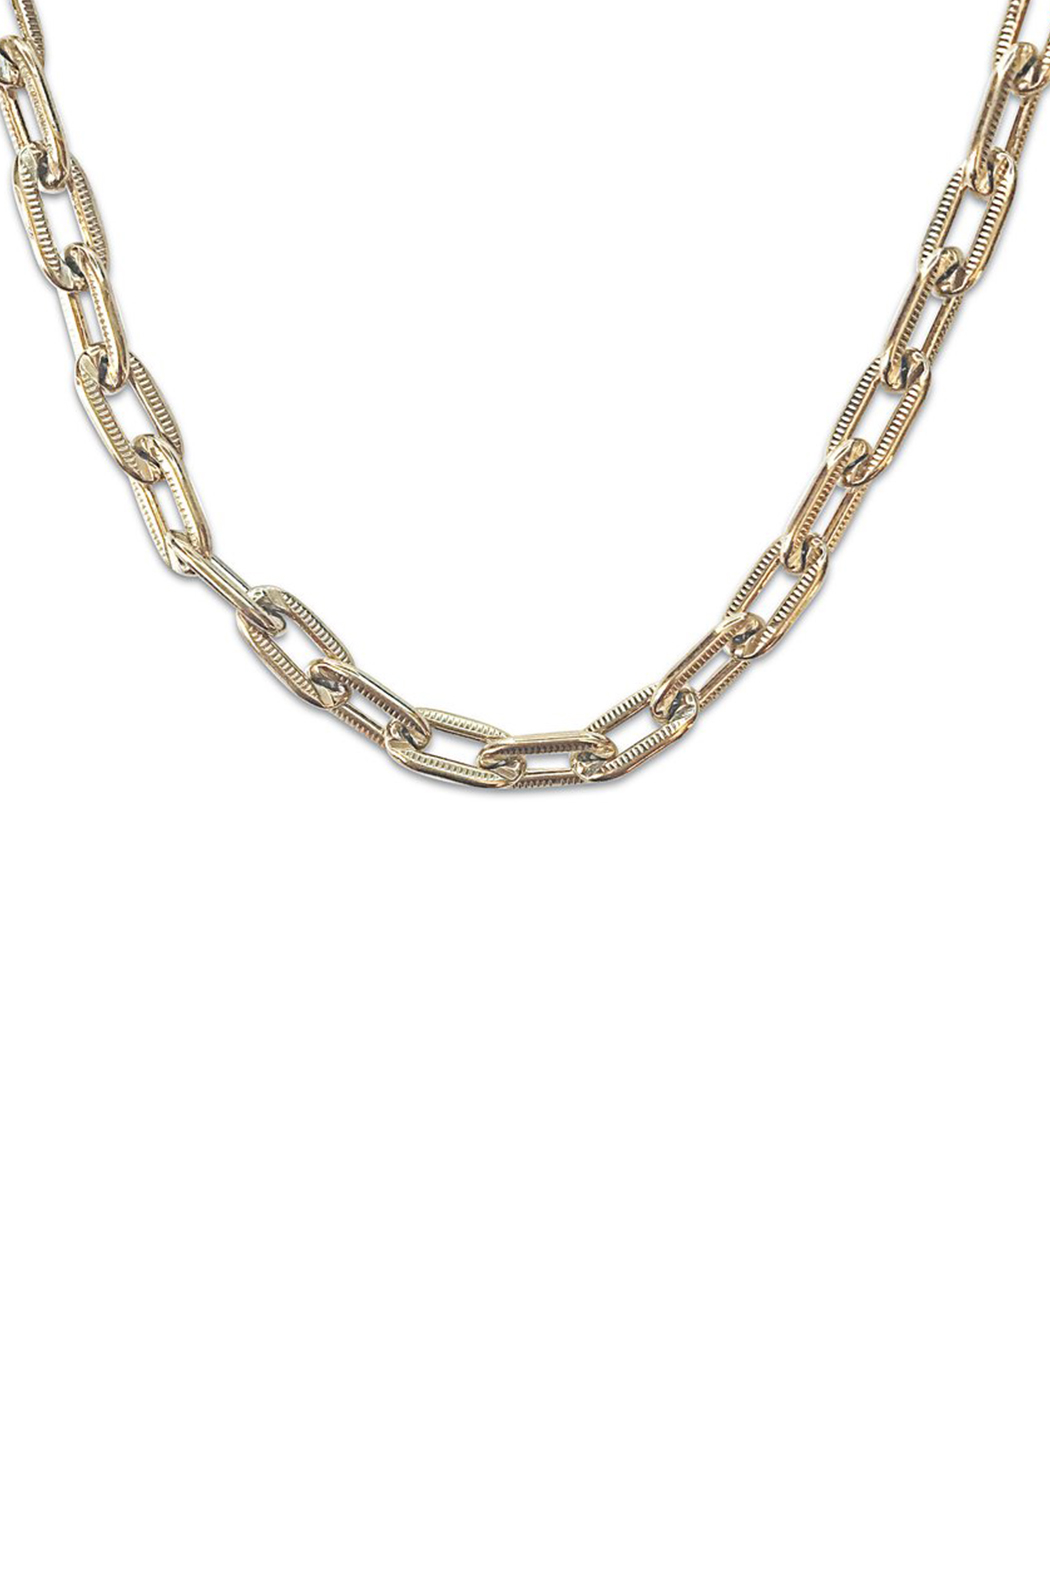 Erin Fader Jewelry Lavish Links Necklace - Front Full Image